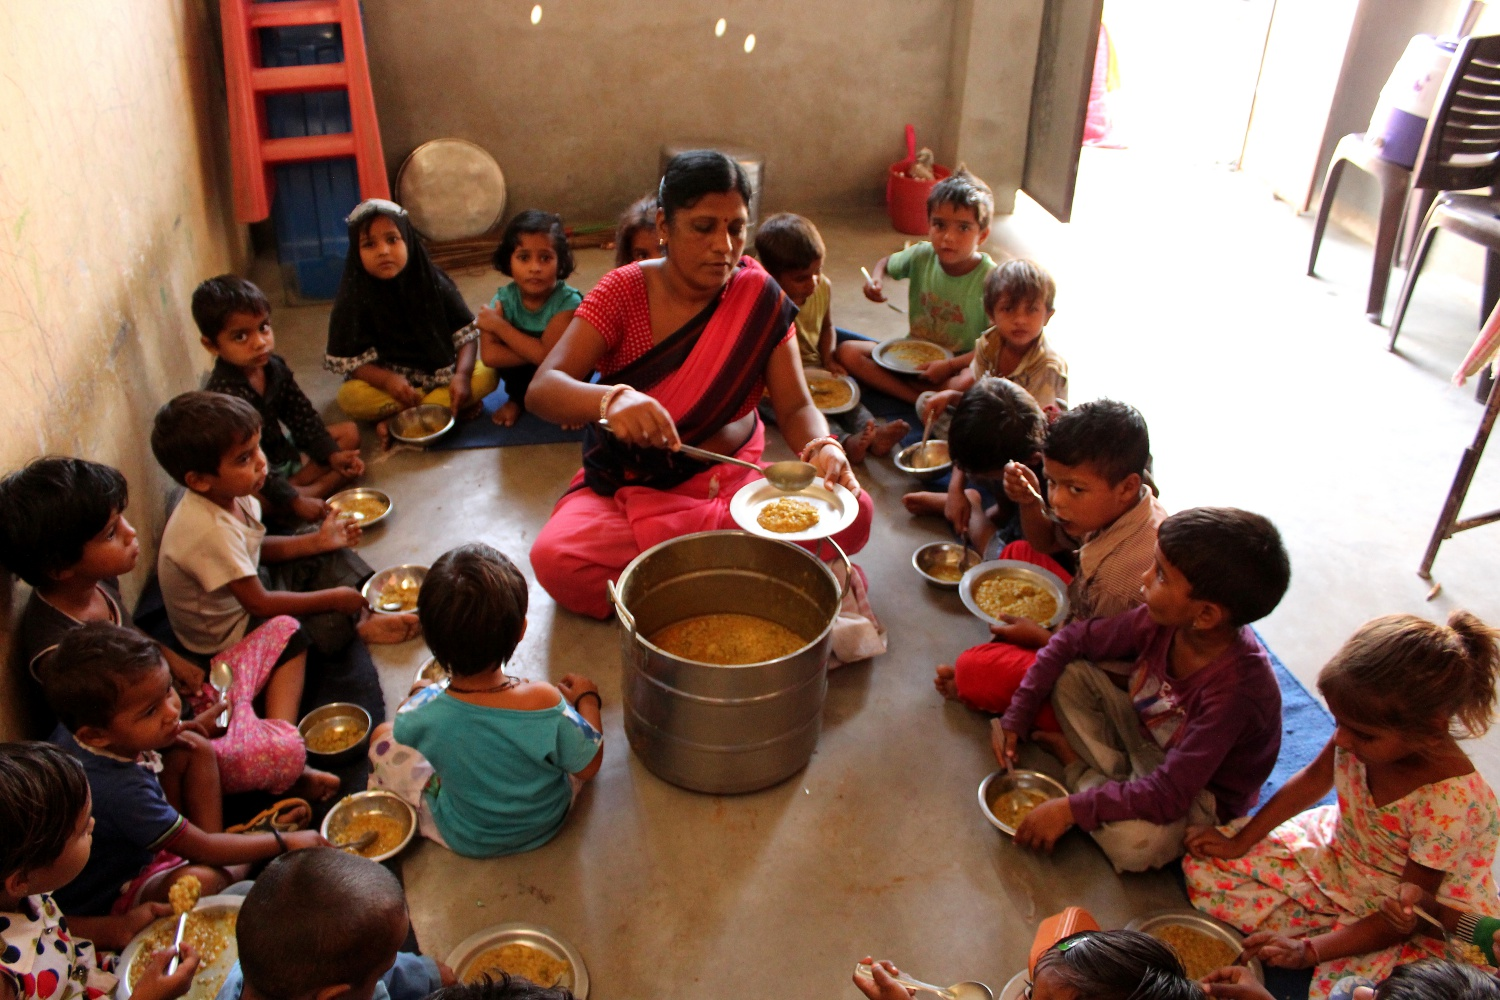 Jaipur: Without Anganwadi Food Service, Families Struggle To Meet Nutritional Needs